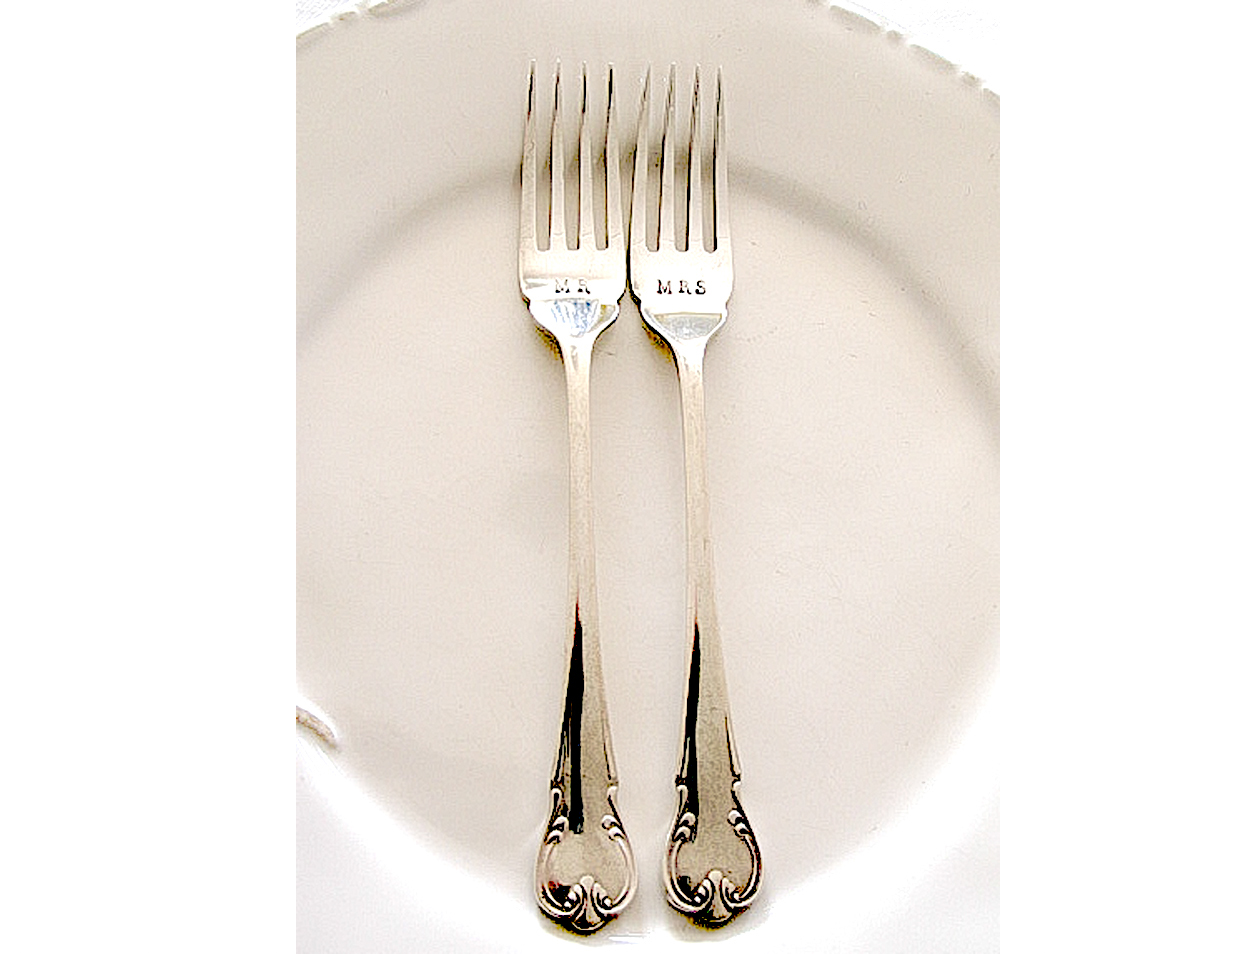 Unique Wedding Gifts Nz : Wedding vintage hand stamped silver plate cutlery Ashberry epns unique ...